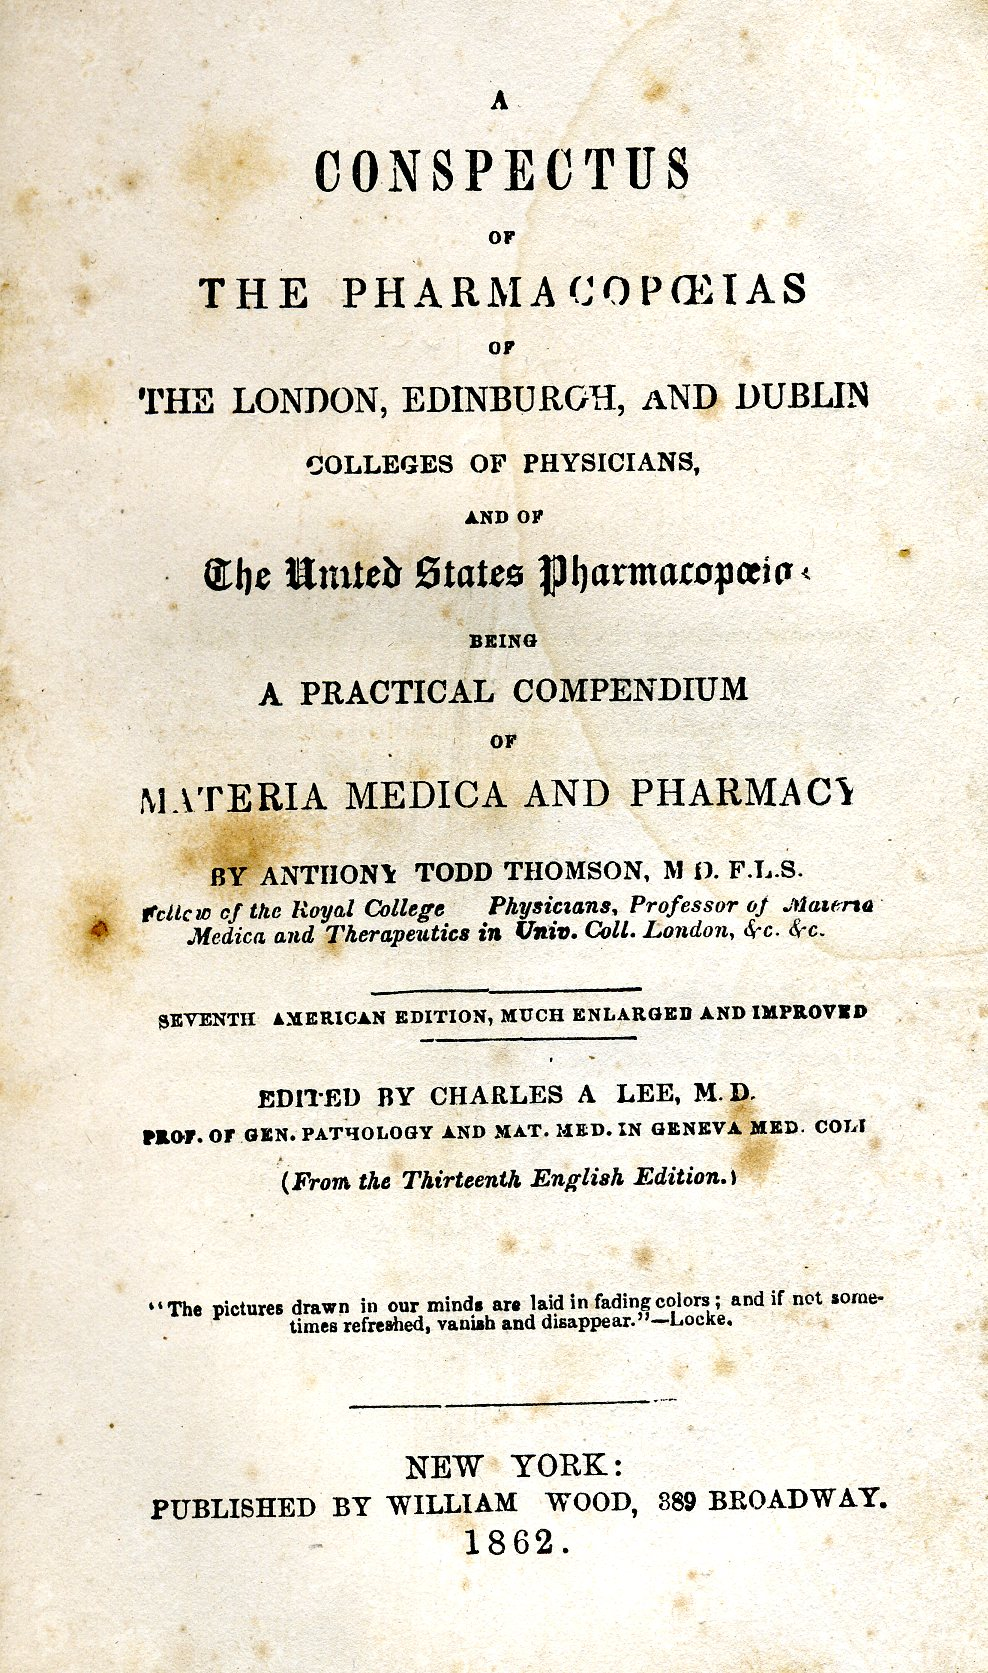 limitations in civil war medicine essay Many challenges existed during the civil war the limitations and problems present in medical care for the soldiers was one of the greatest.